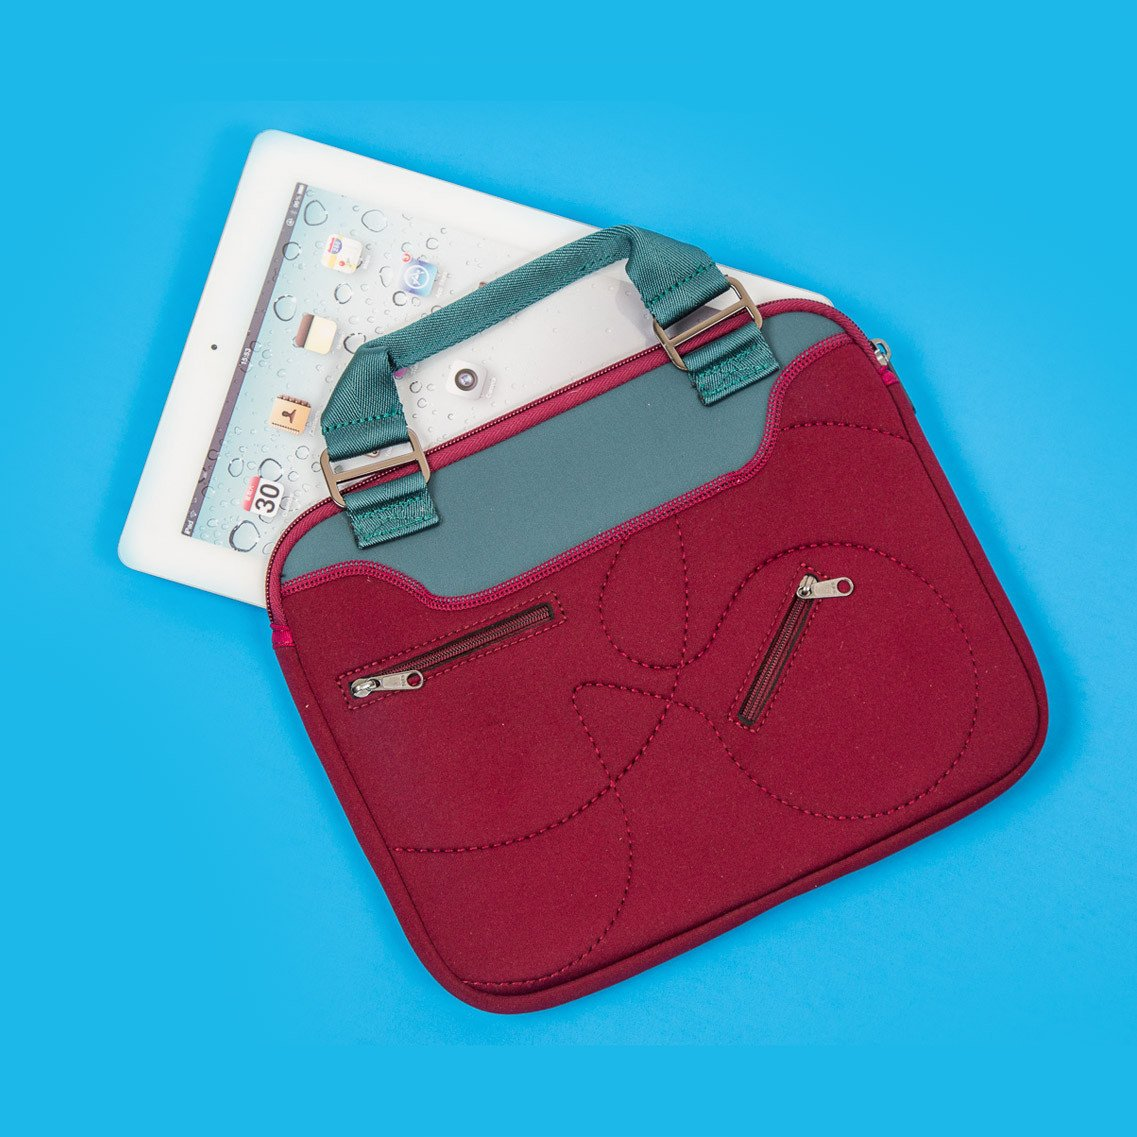 "Travel Hoptu 10"" Sleeve Laptop & Tablet Cases - Looptworks"